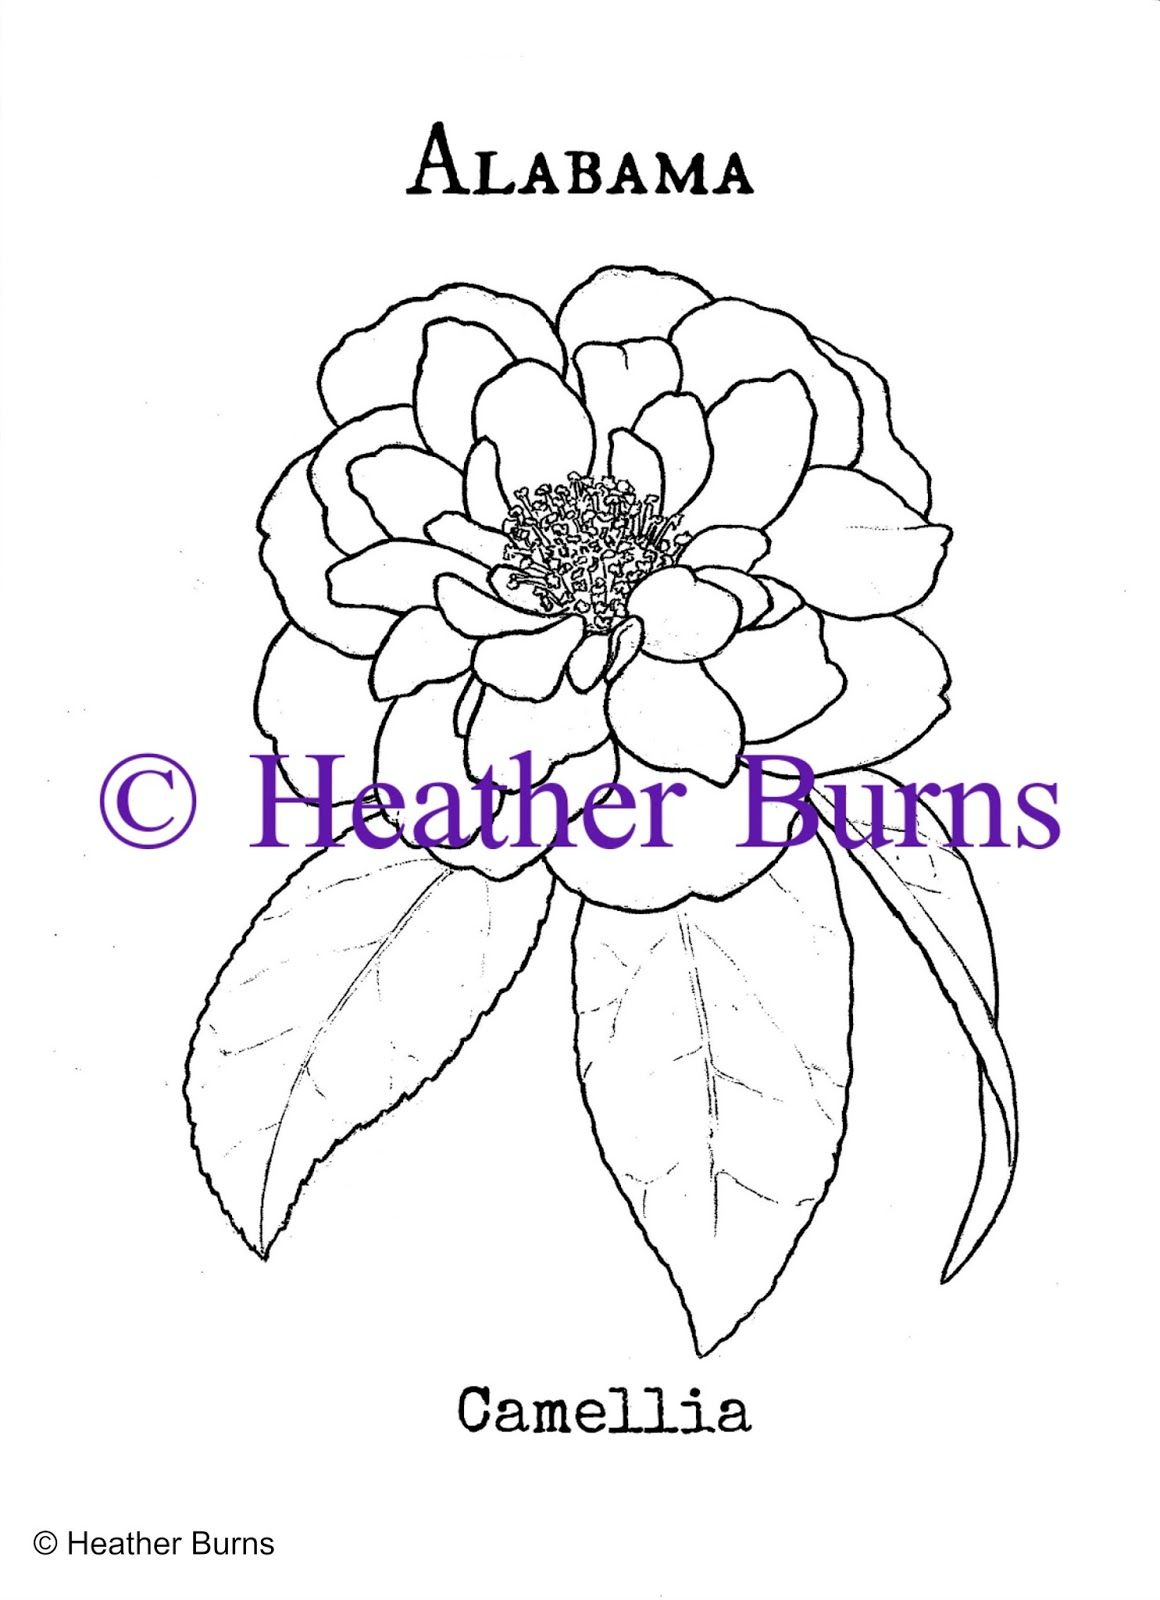 Alabama State Flower Camellia Coloring Page Flower Coloring Pages Coloring Pages Flower Coloring Sheets